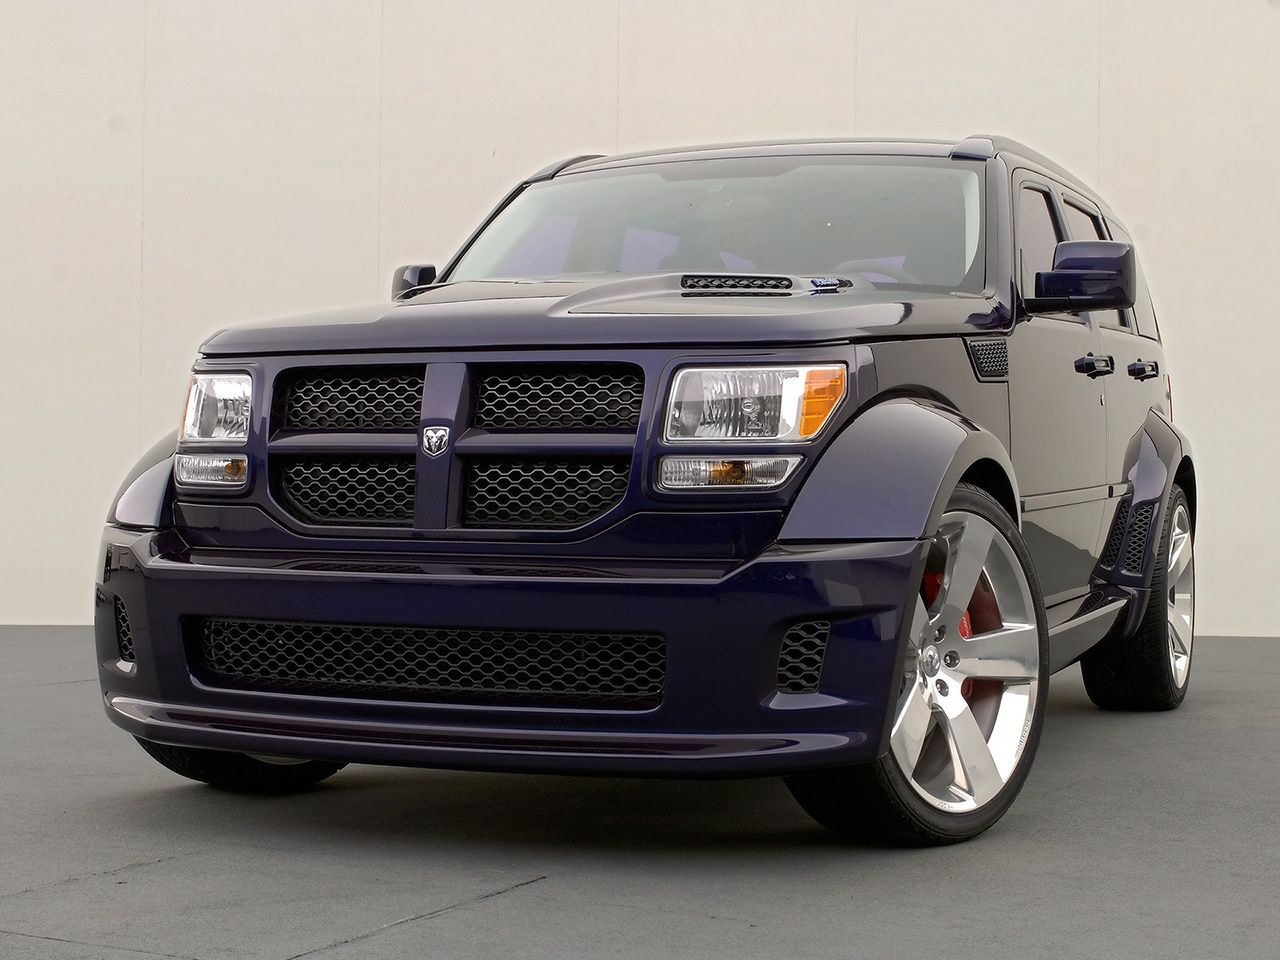 Pin By Rvinyl On Body Kits Bumpers Side Skirts Spoilers Dodge Nitro Dodge Suv Dodge